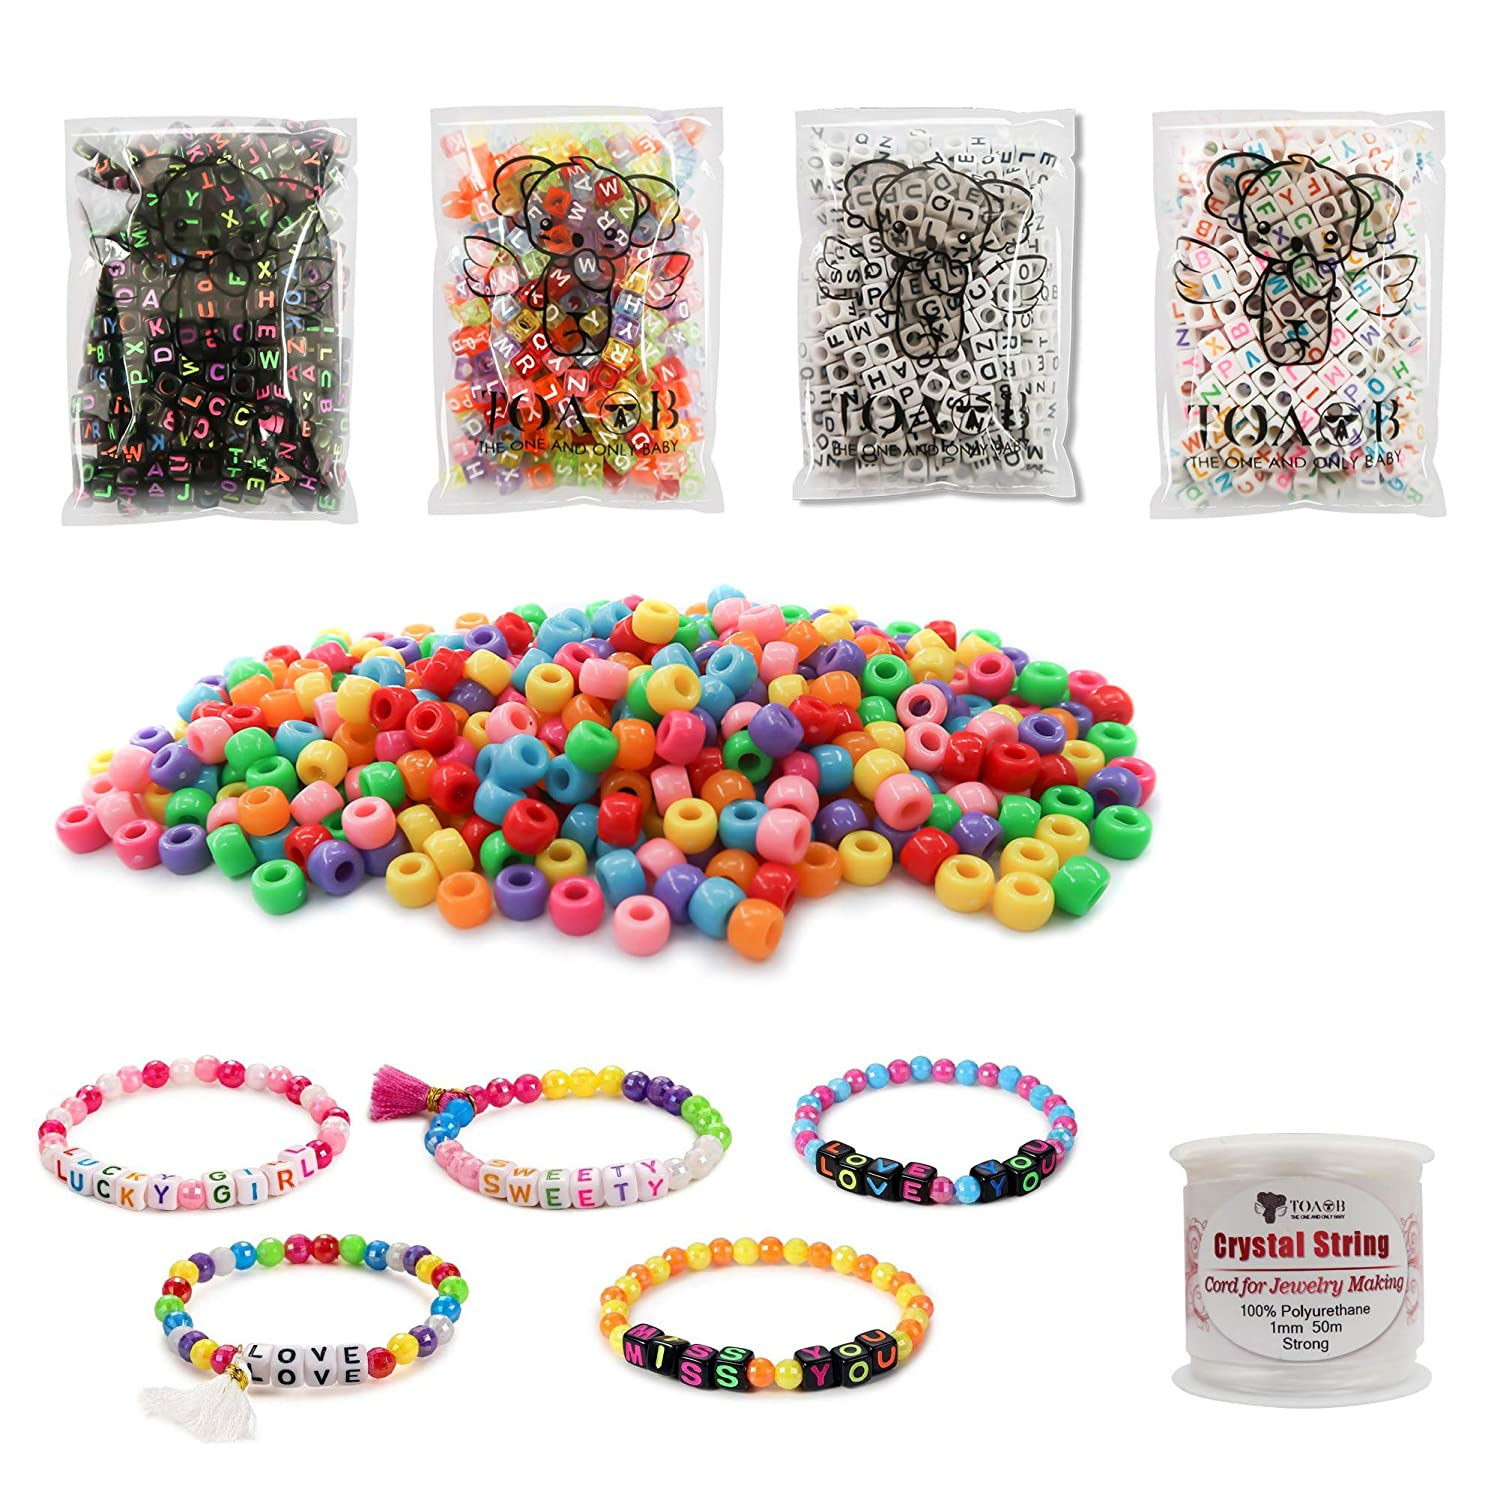 TOAOB 1200pcs Assorted Color Acrylic Alphabet Letter Beads and Pony Beads Combination Kit with Crystal Wire for Kids Handmade DIYy Jewelry Making DE-toaobCXSQ0003-1set